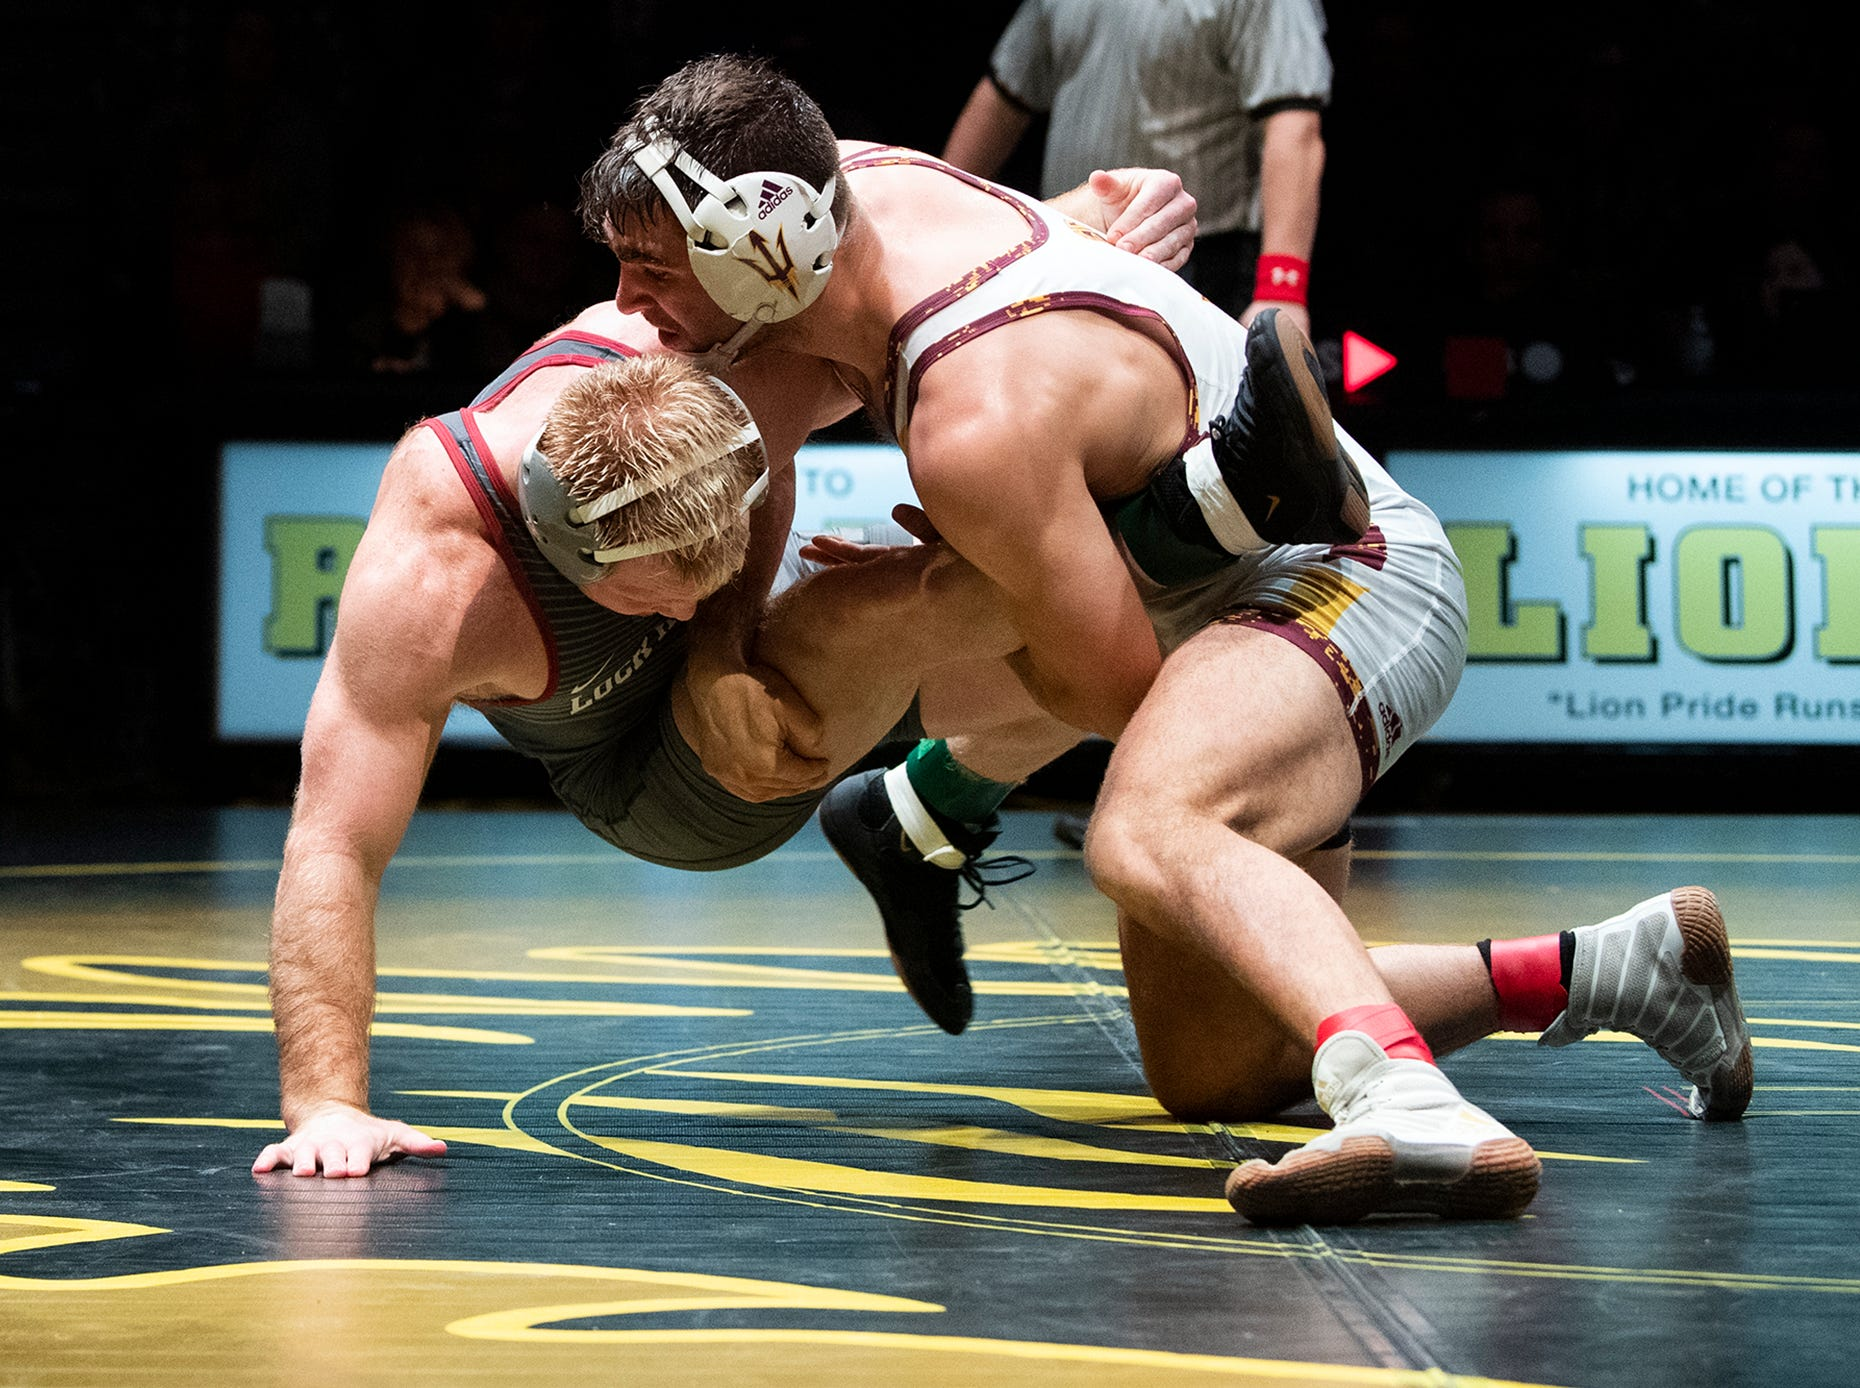 Arizona State's Josh Shields, right, works to take down Lock Haven's Chance Marsteller during the 165-pound bout at Red Lion's Fitzkee Athletic Center on Friday, Jan. 25, 2019. Shields (No. 5) beat Marsteller (No. 4), 2-1, in a tiebreaker. No. 22 Lock Haven upset No. 12 Arizona State, 23-14, in the first ever 'Rumble in the Jungle.'